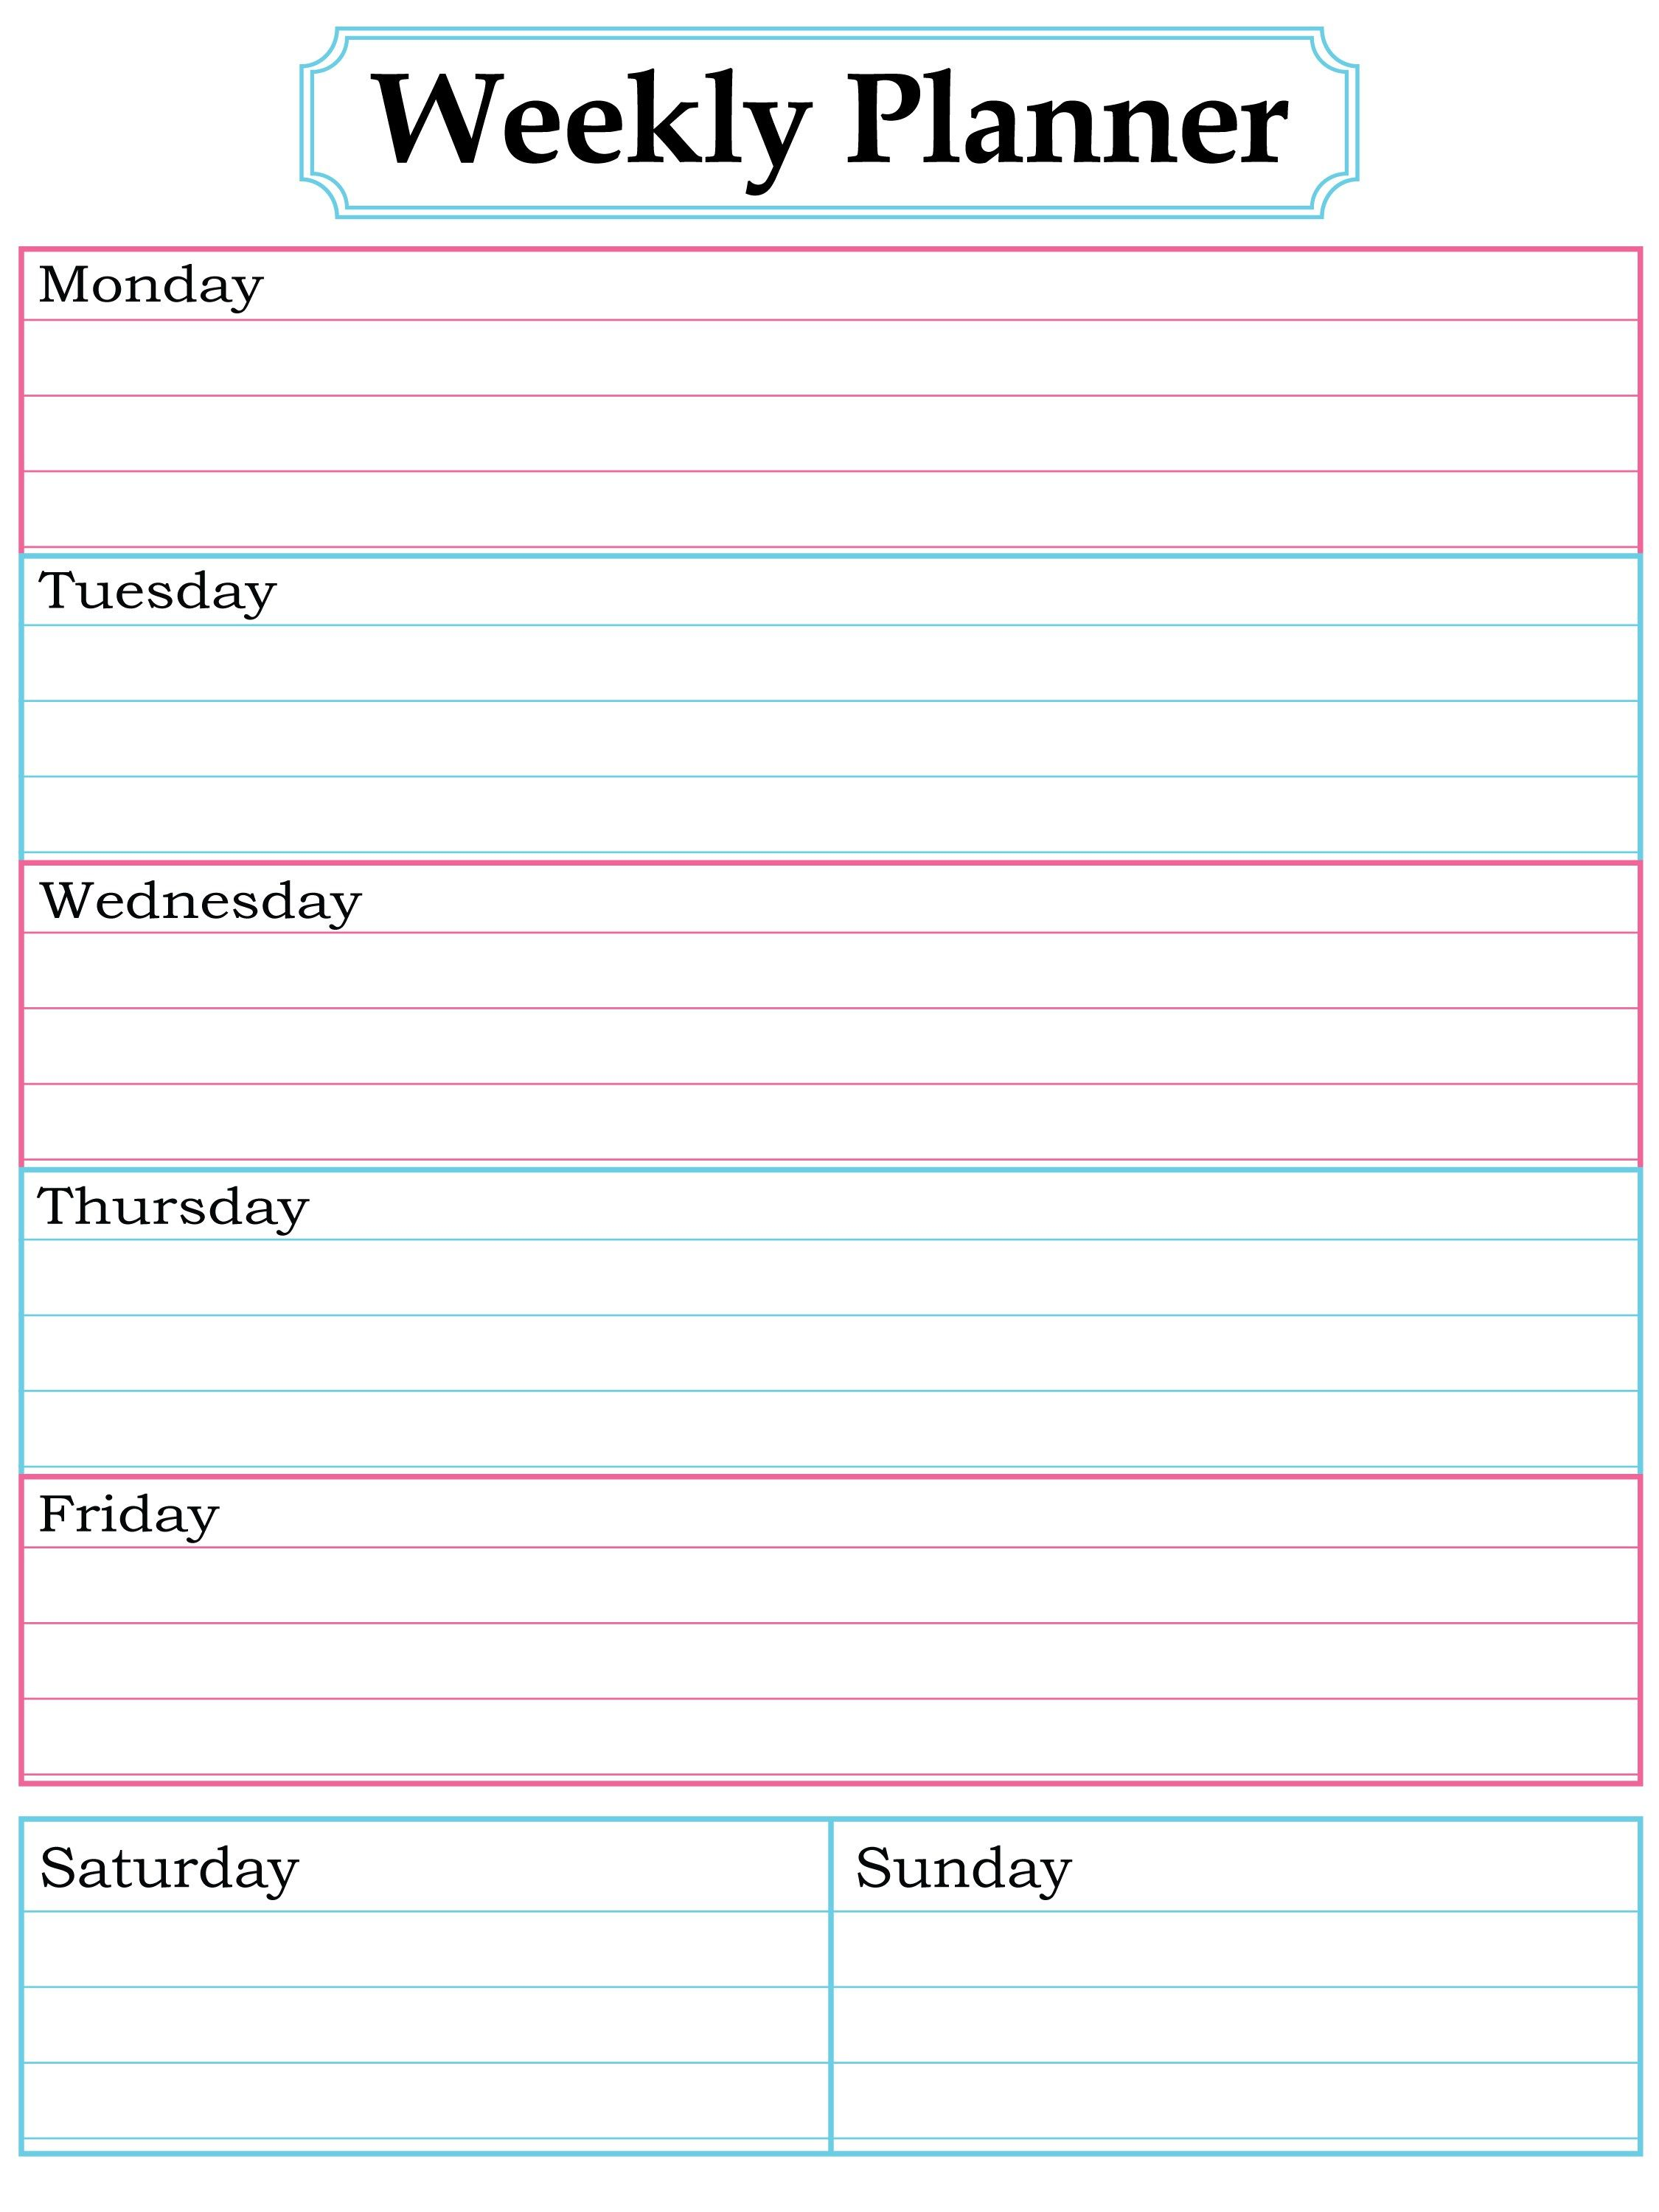 Daily Planner Template Printable Free Printable Daily Calendar ...